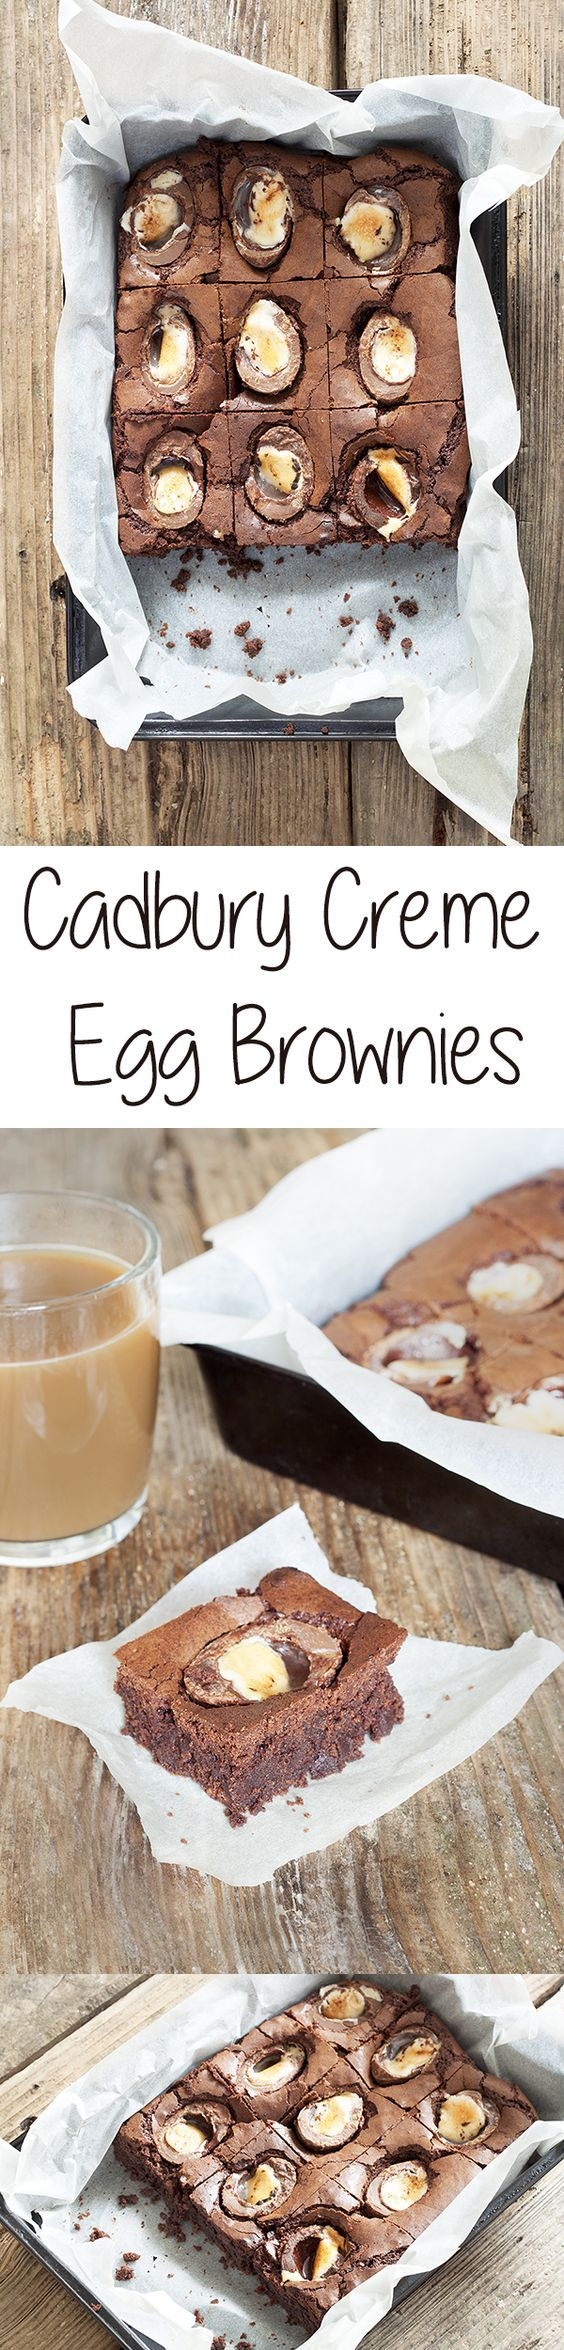 These Cadbury Creme Egg brownies are scrumptious! Easy to follow step by step instructions with images to help you. Get baking now! via @cookbakeeat